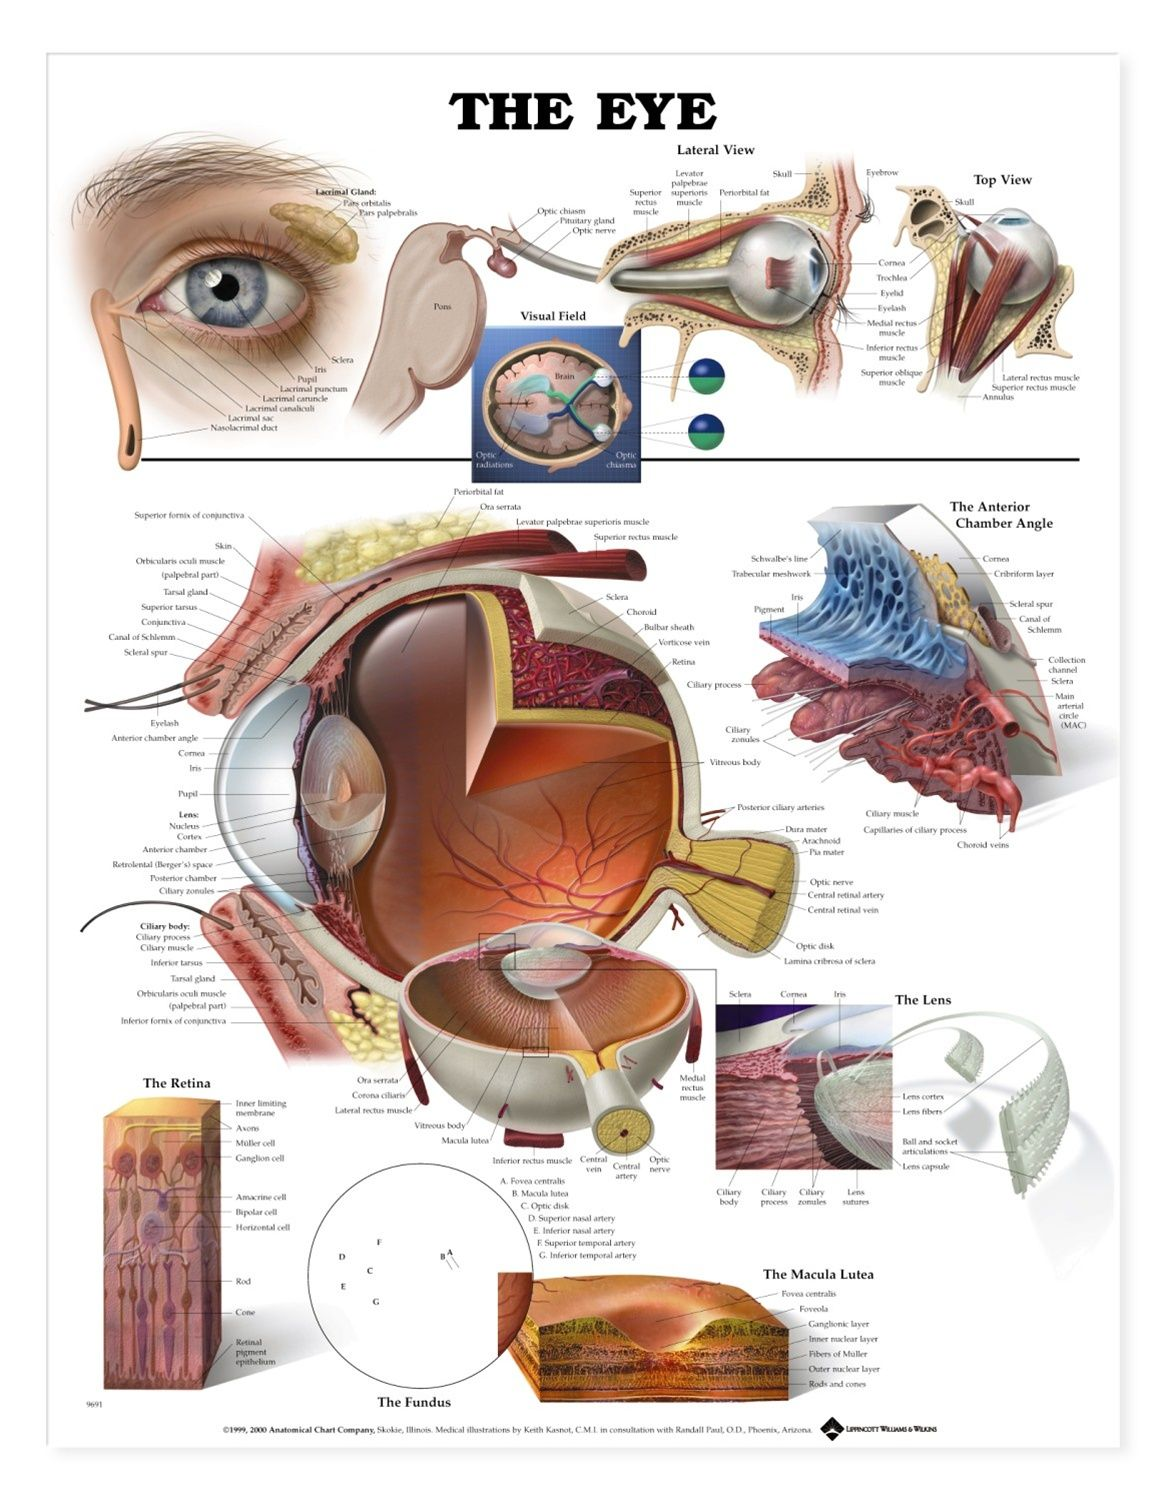 Pin By Damaris Martinez On Study Tools Pinterest Anatomy